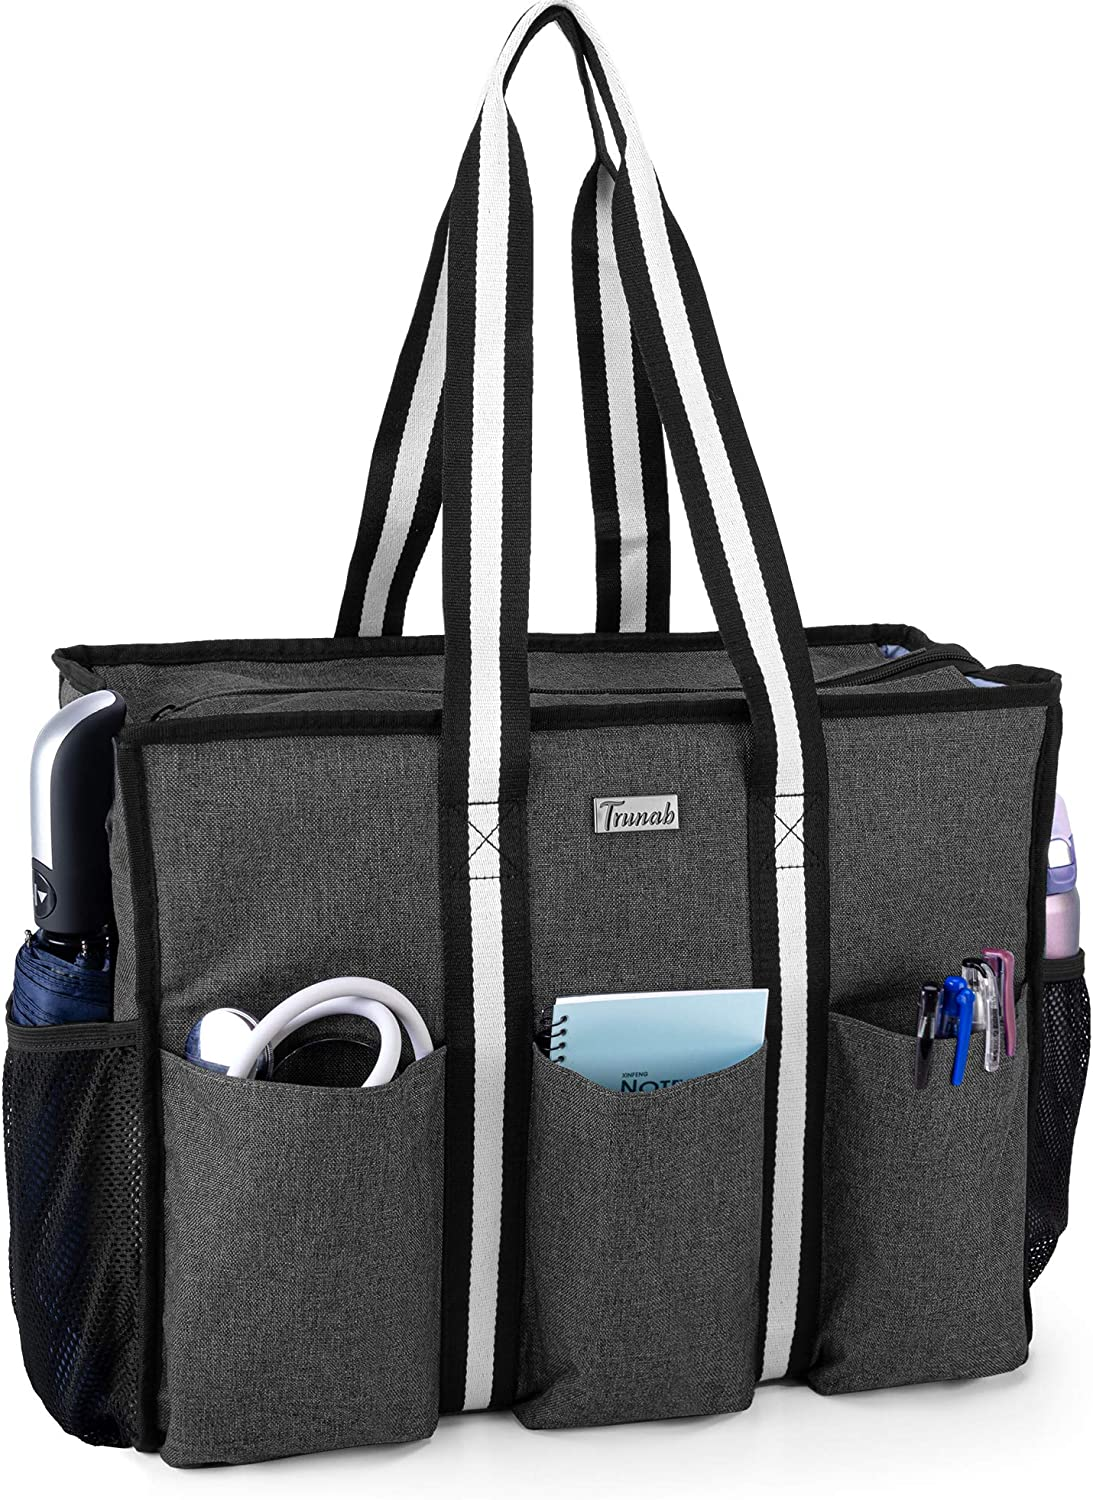 Trunab Nurse Bag and Tote for Work with Padded Laptop Sleeve, Nursing Bag with Multiple Pockets for Home Health